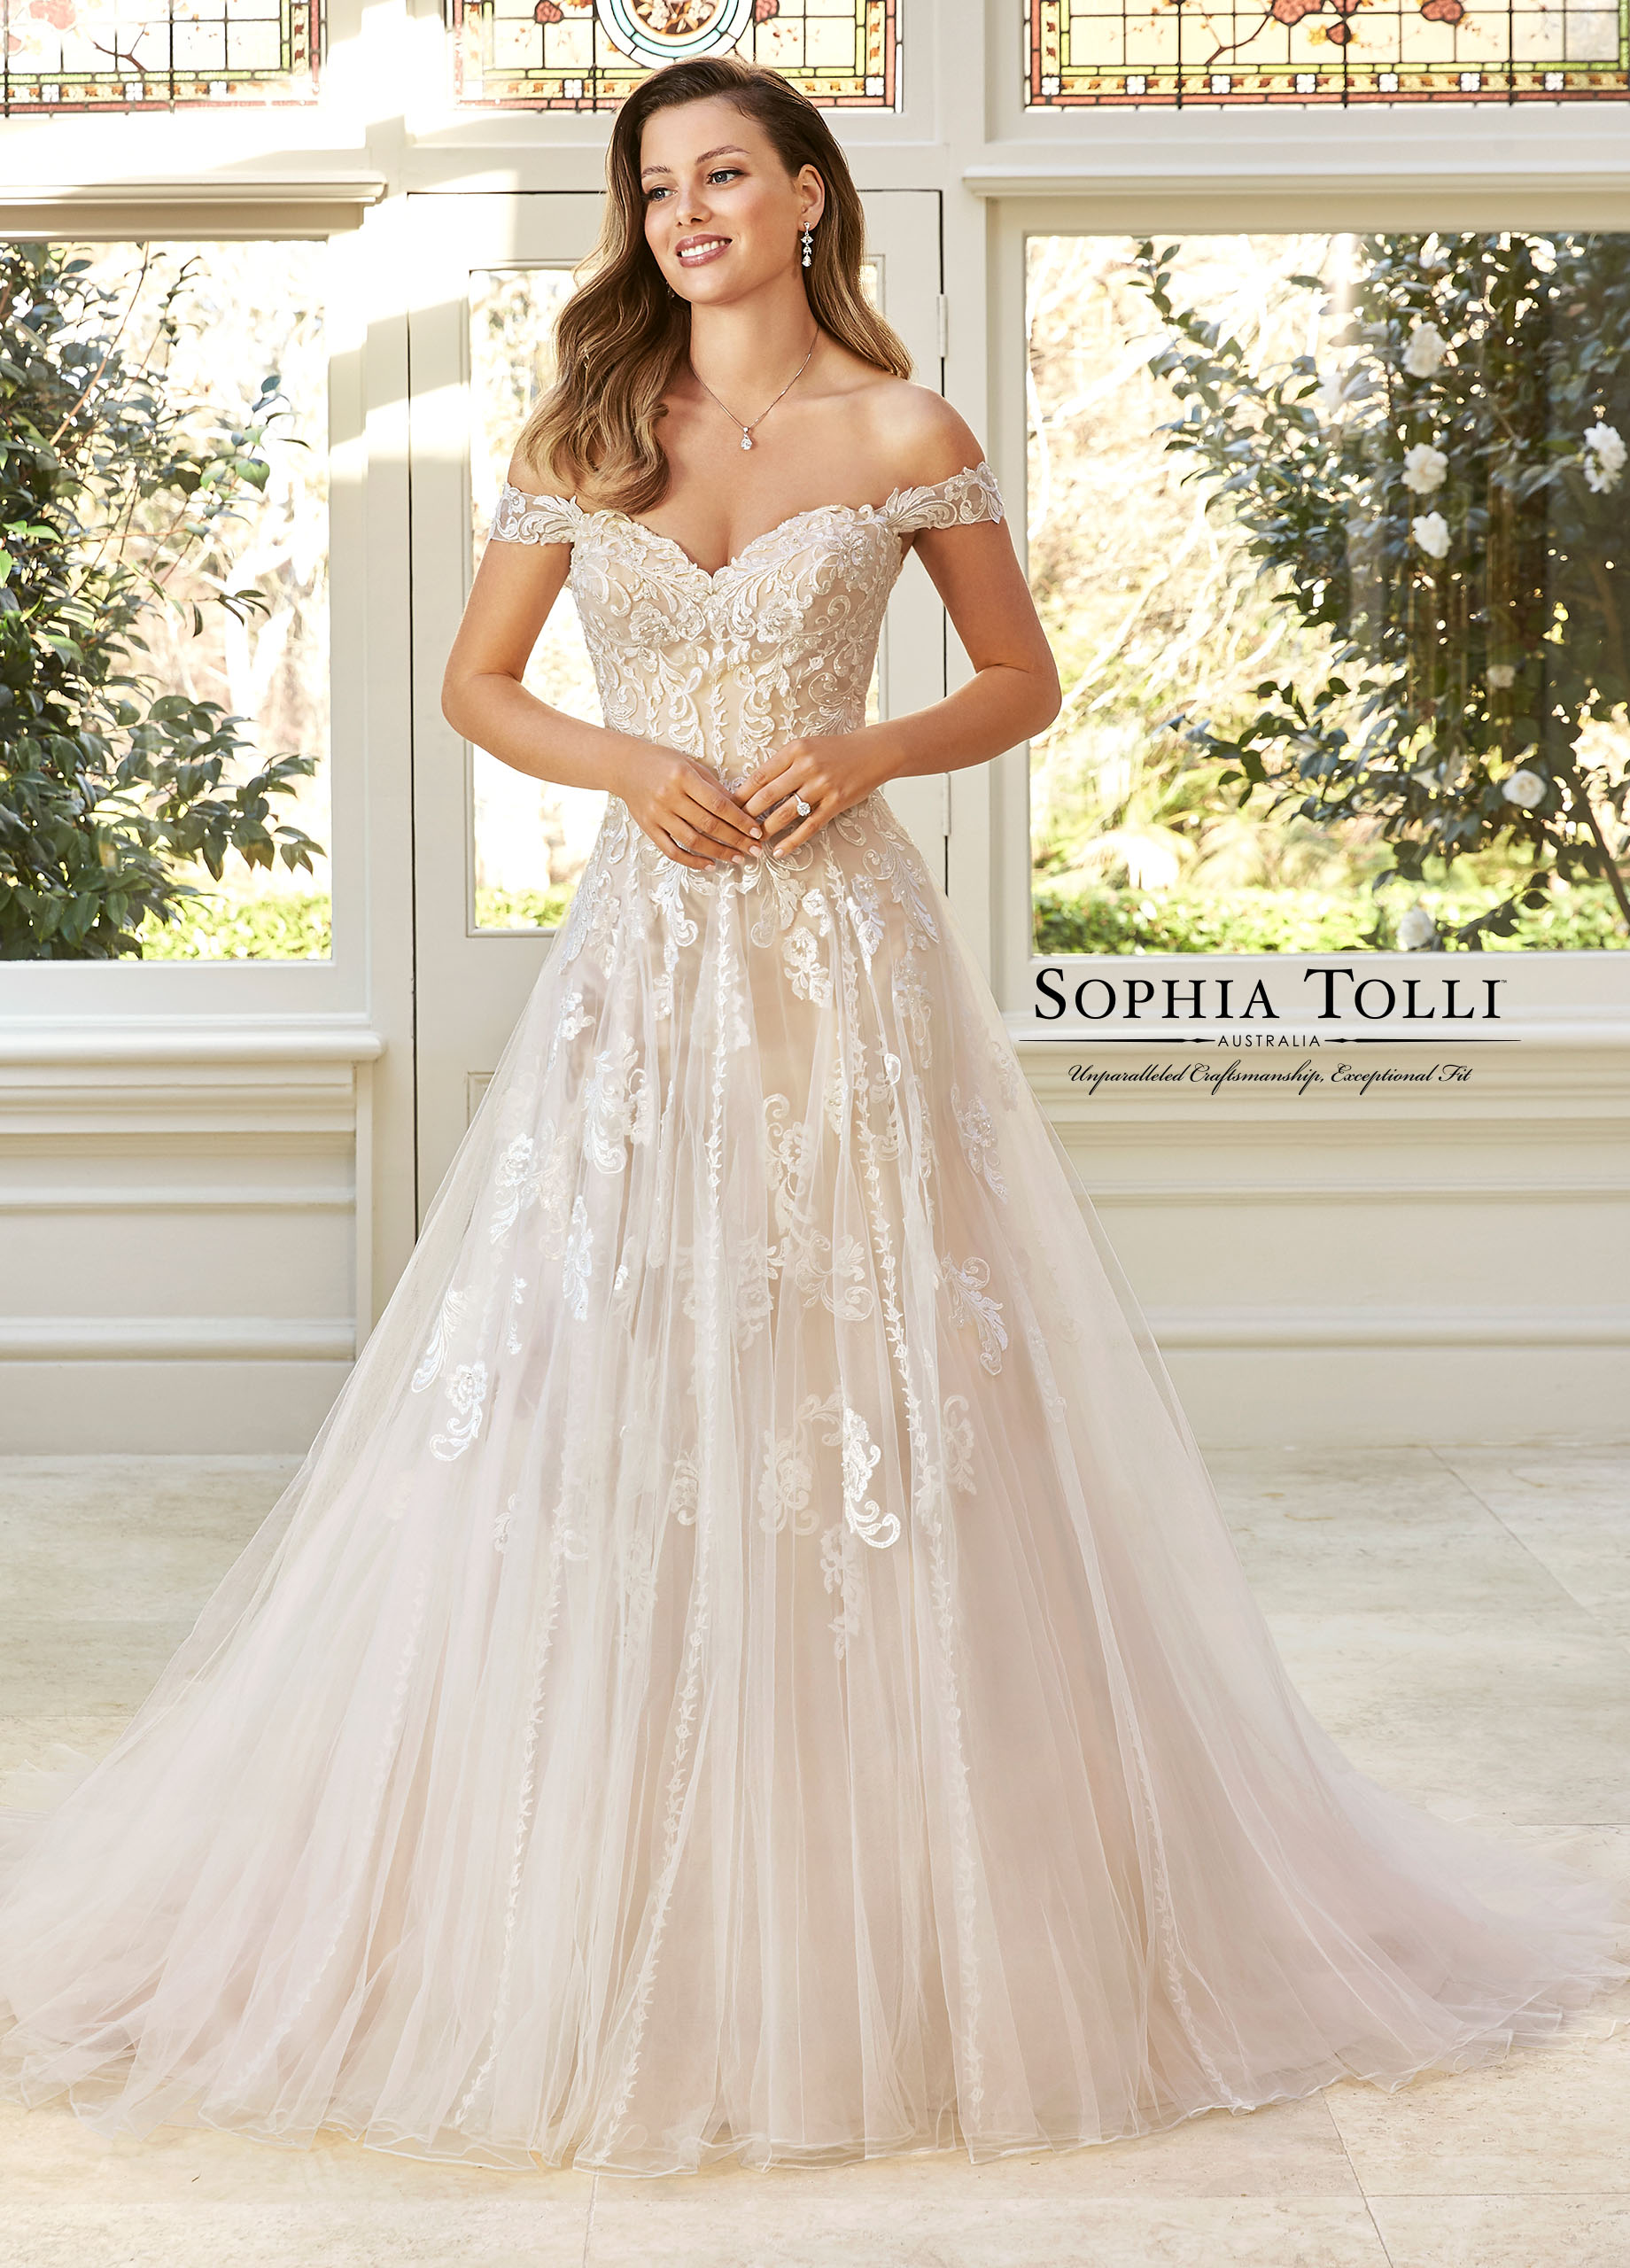 Sophia Tolli Y11949   Retail Price $1998 | Contact Us For Price